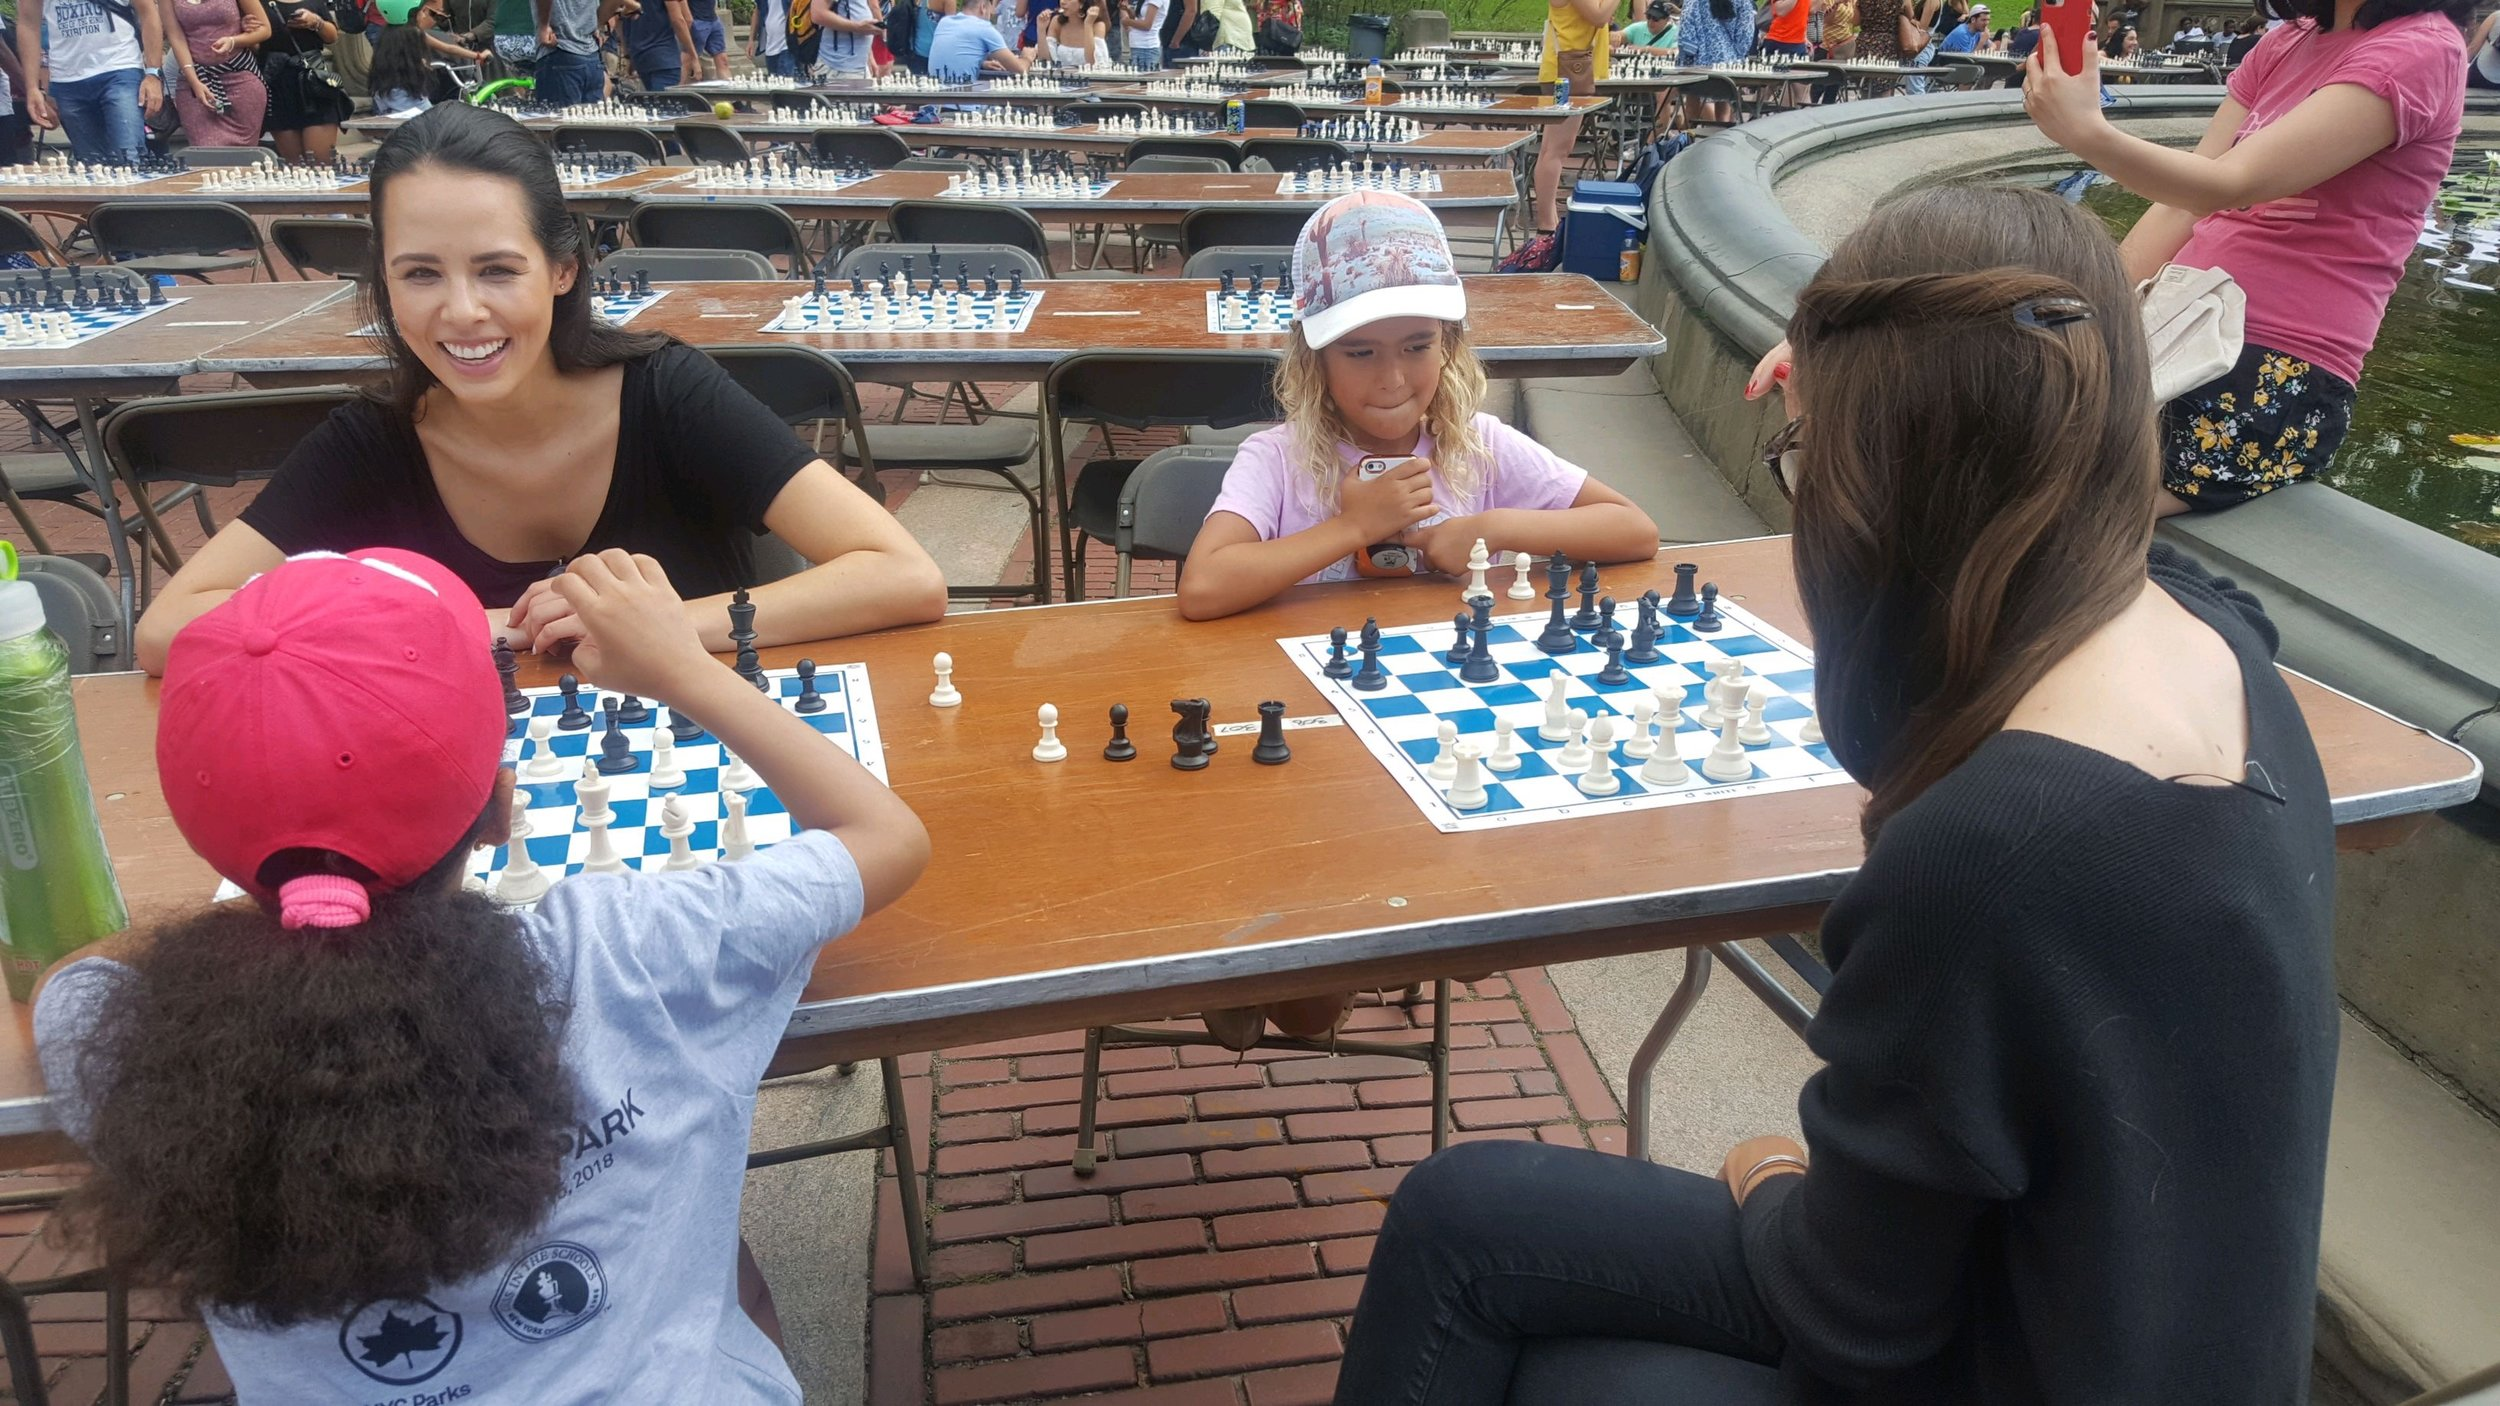 Enjoying the 18th annual Chess-in-the-Park